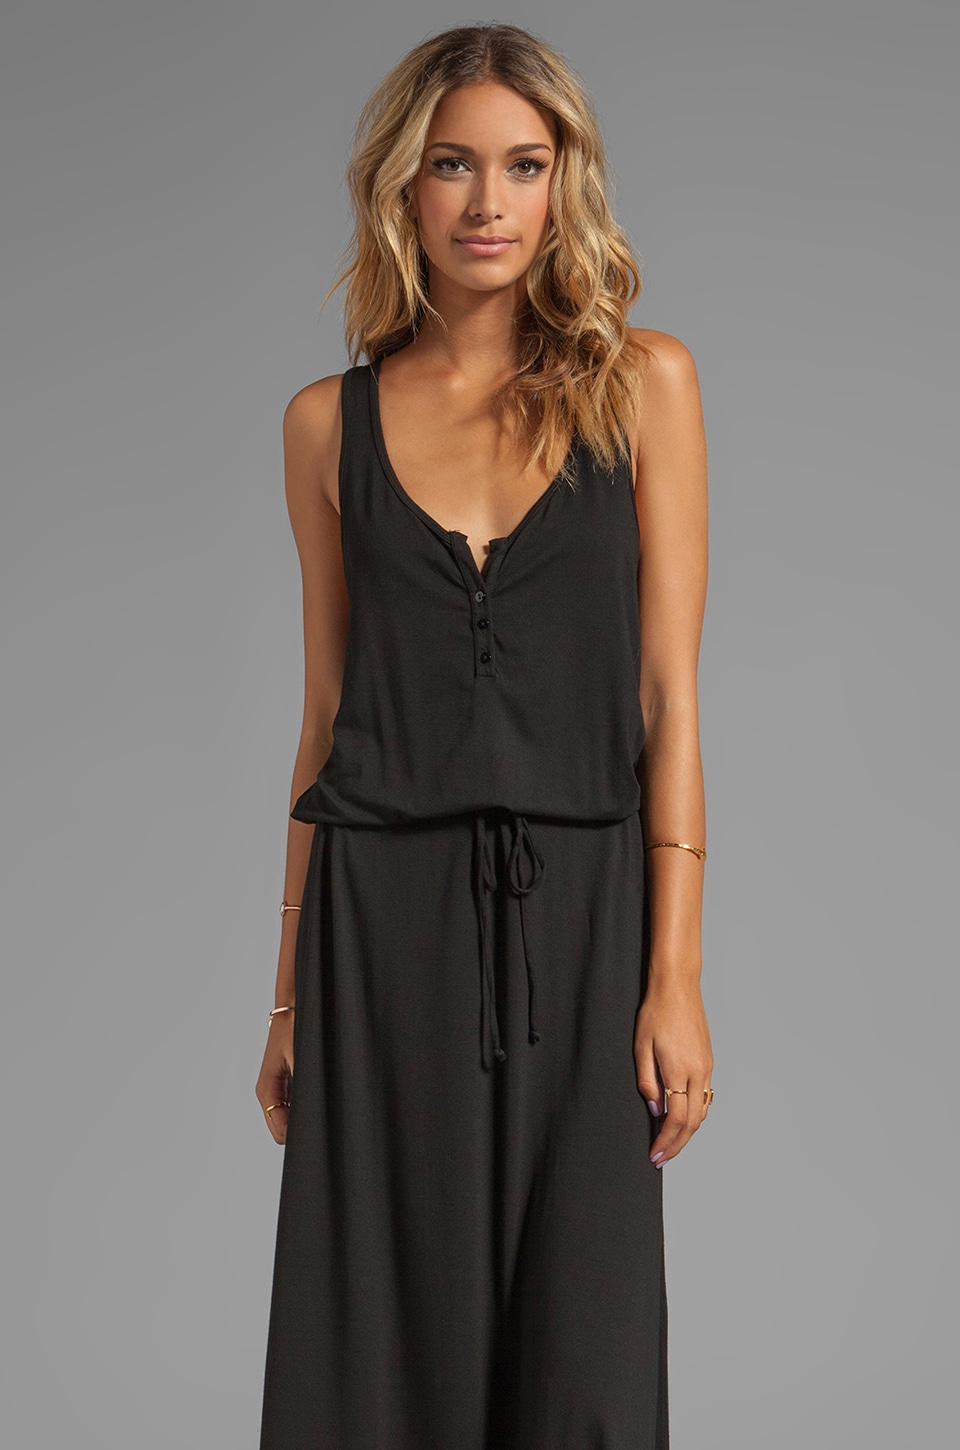 Feel the Piece Henley Maxi Dress in Black